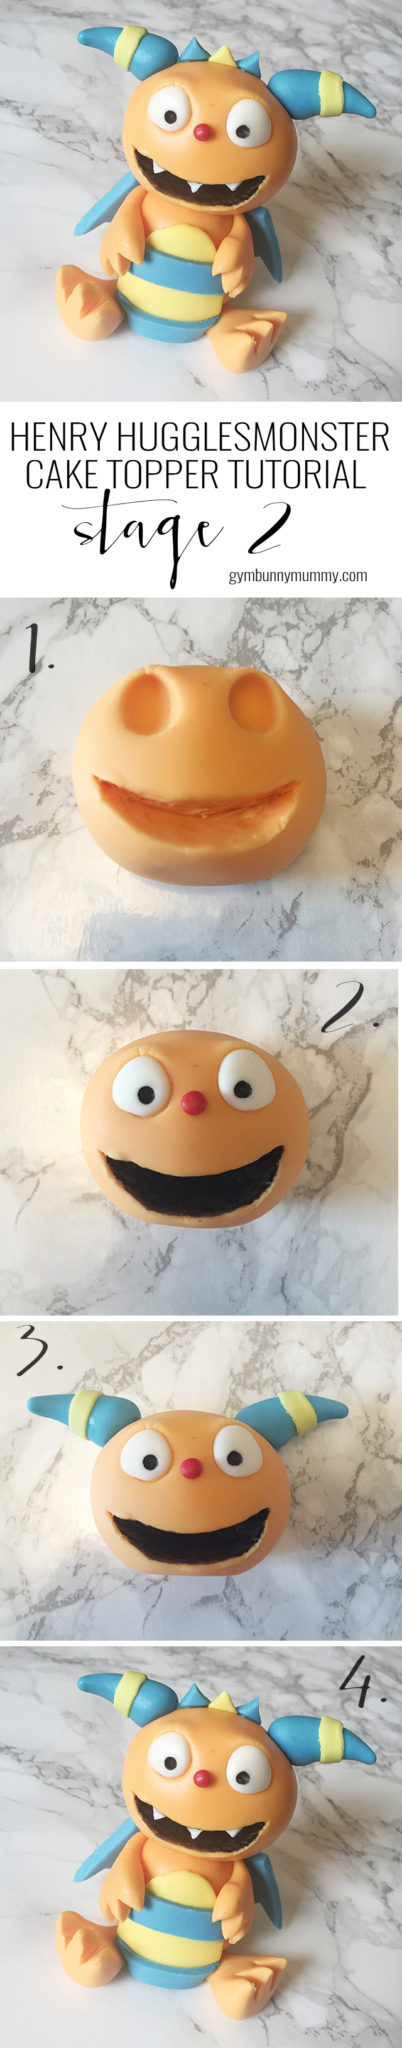 Step by step Henry Hugglemonster cake topper tutorial. How to make a Henry Hugglemonster cake for you little monster :)